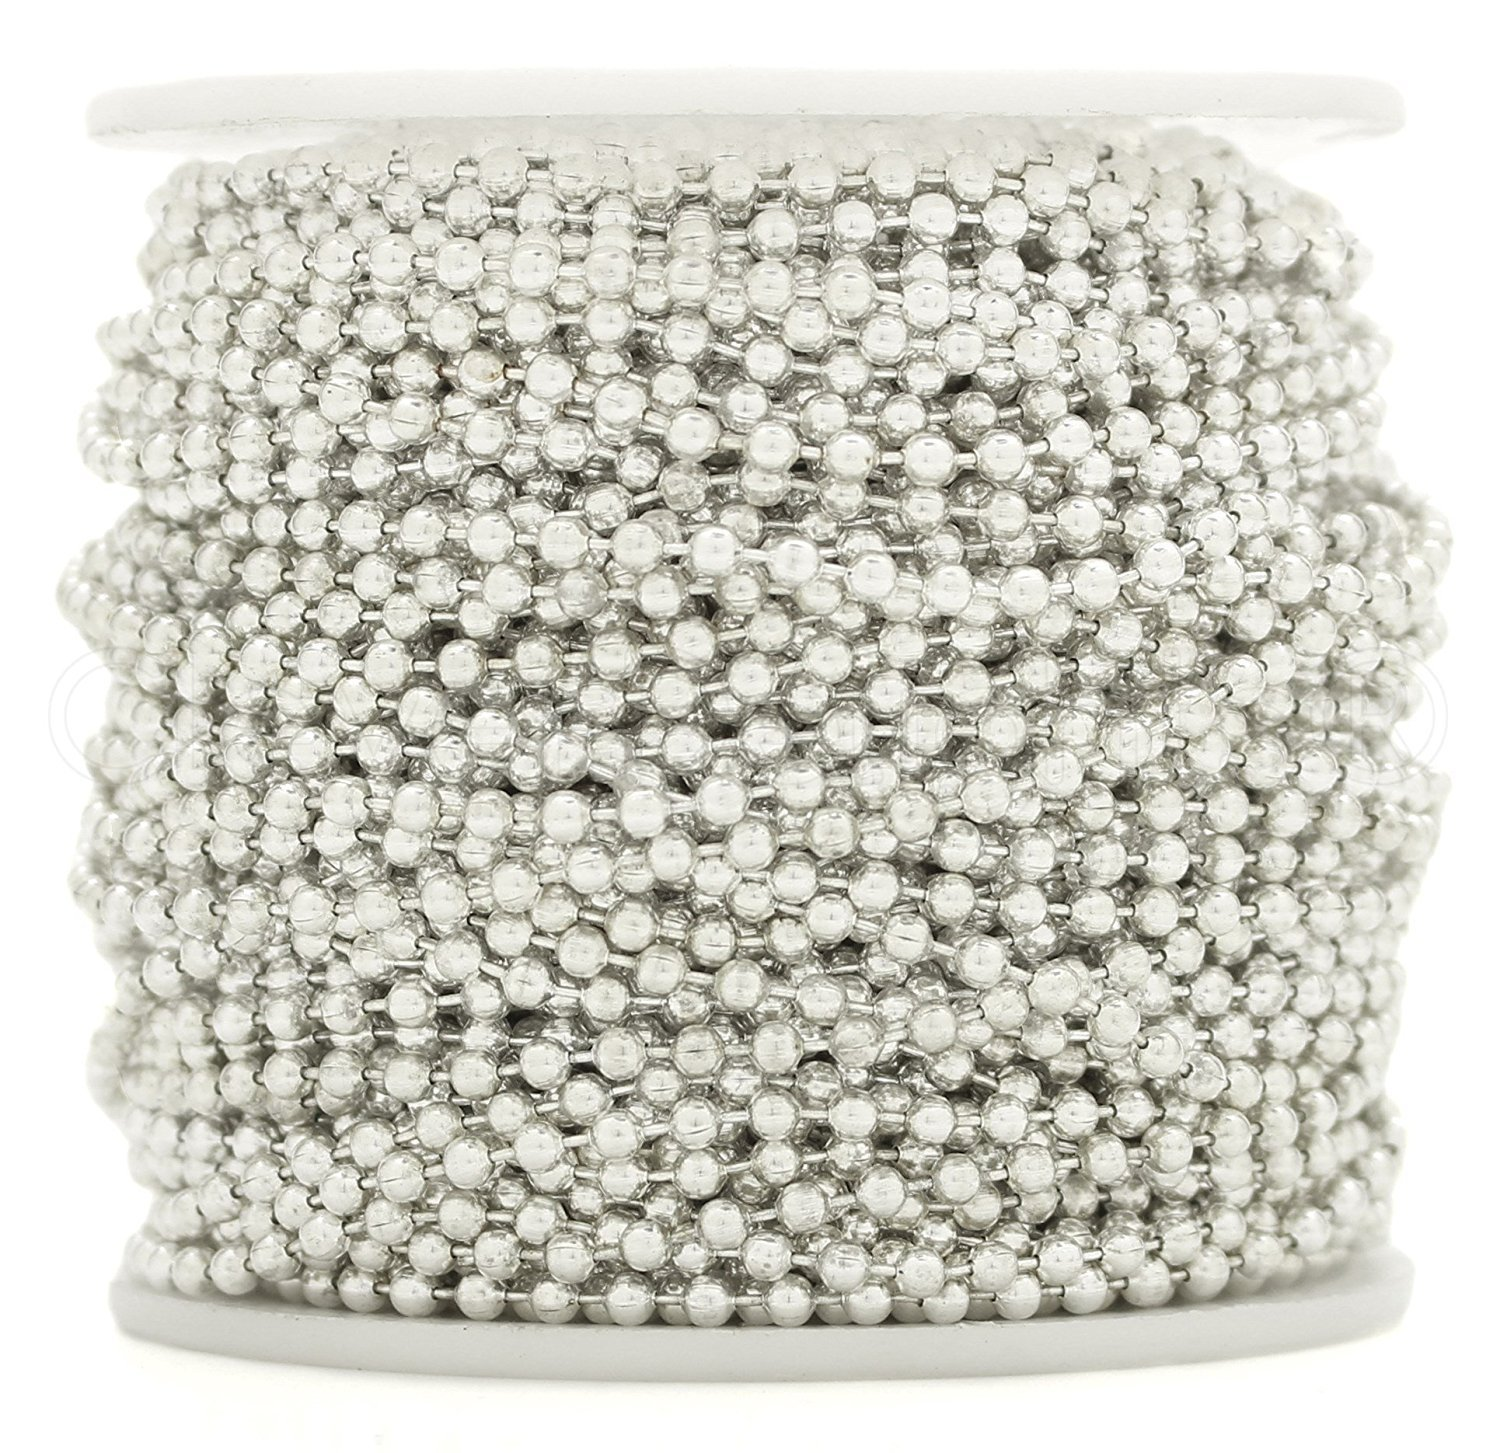 CleverDelights Ball Chain Spool - 100 Feet - Shiny Silver Color - 2.4mm Ball